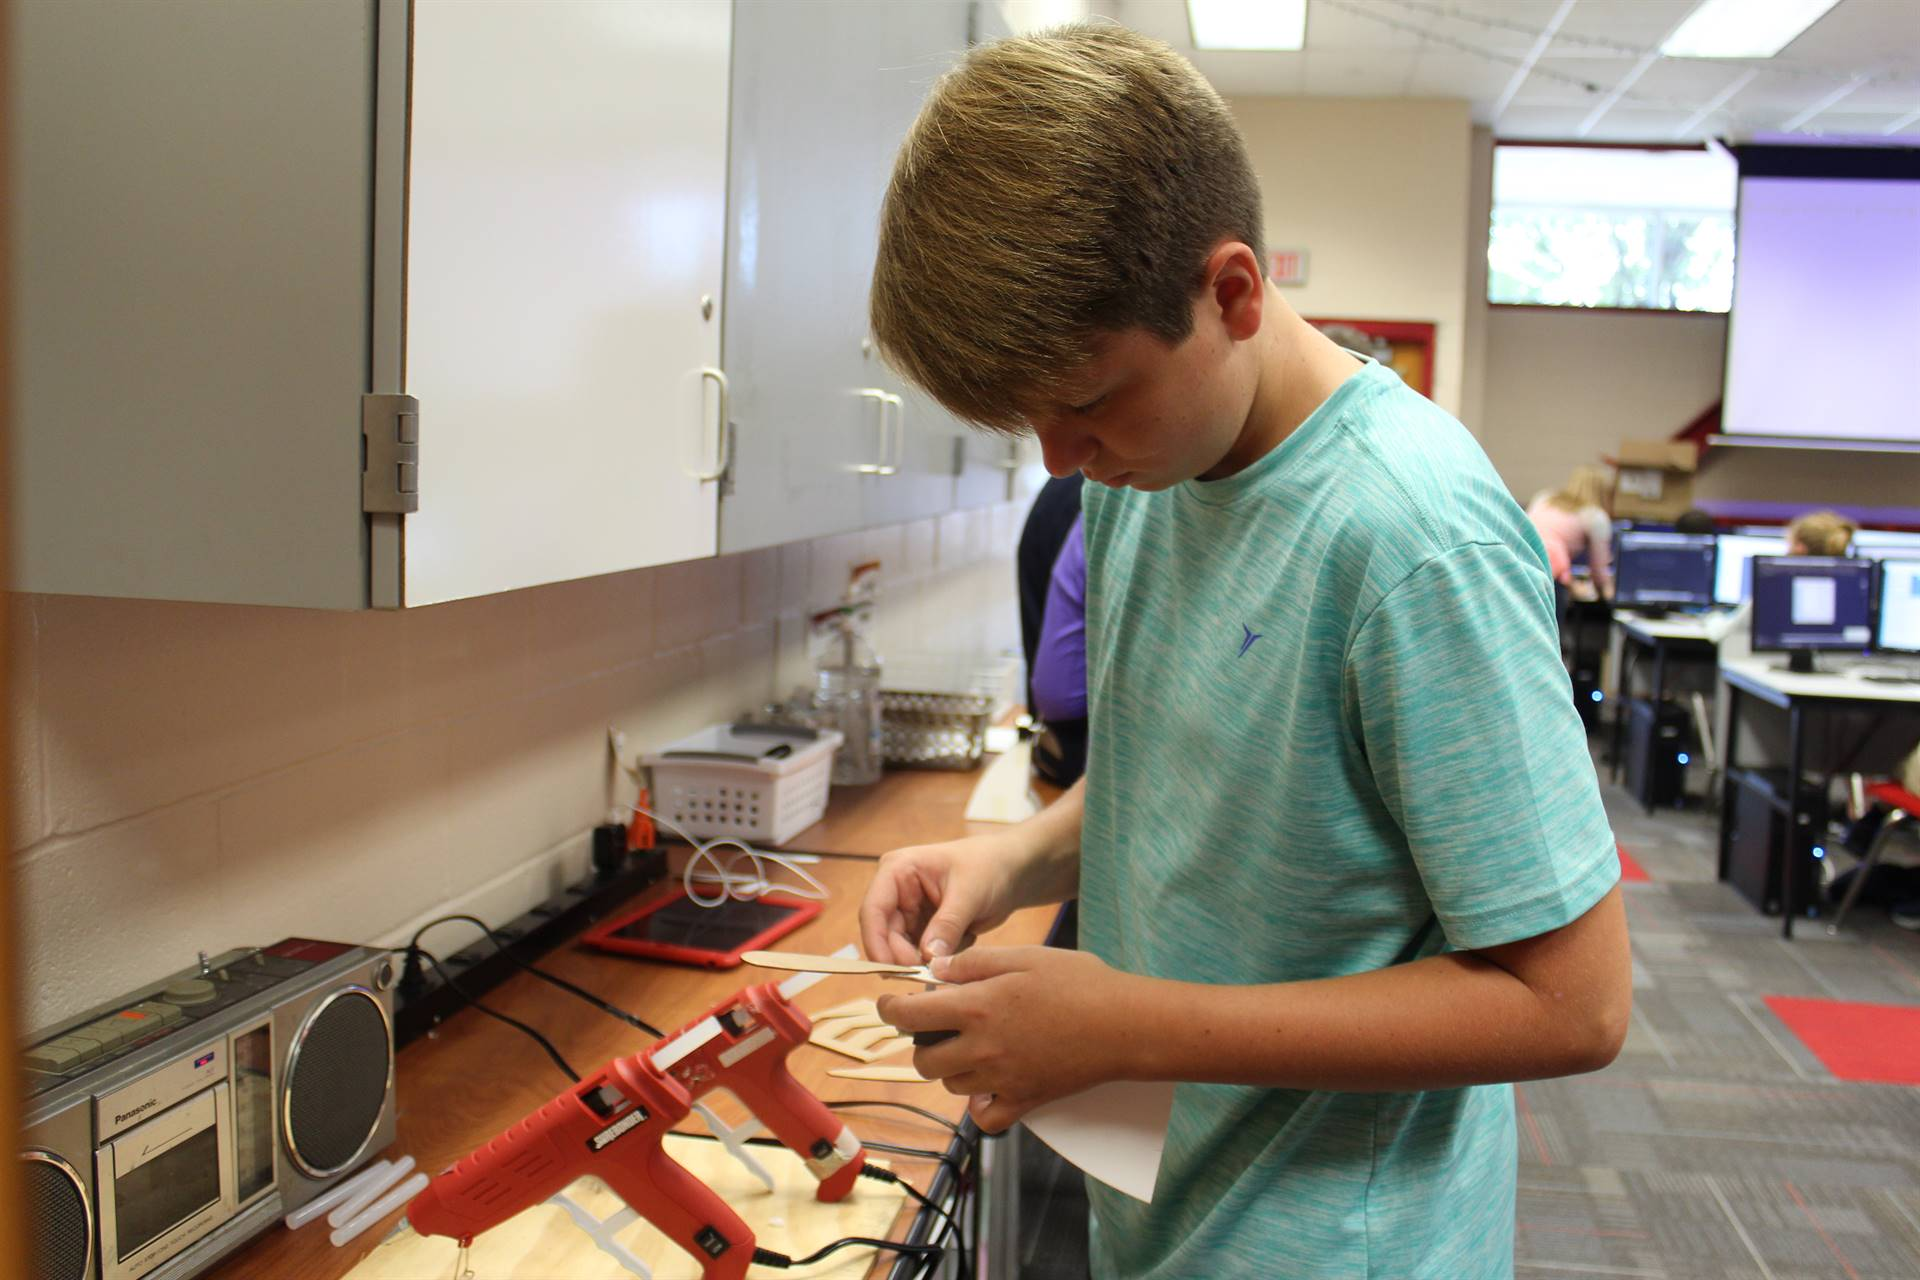 Intro to Sustainable Engineering Photo - Installing New Blades on Turbine